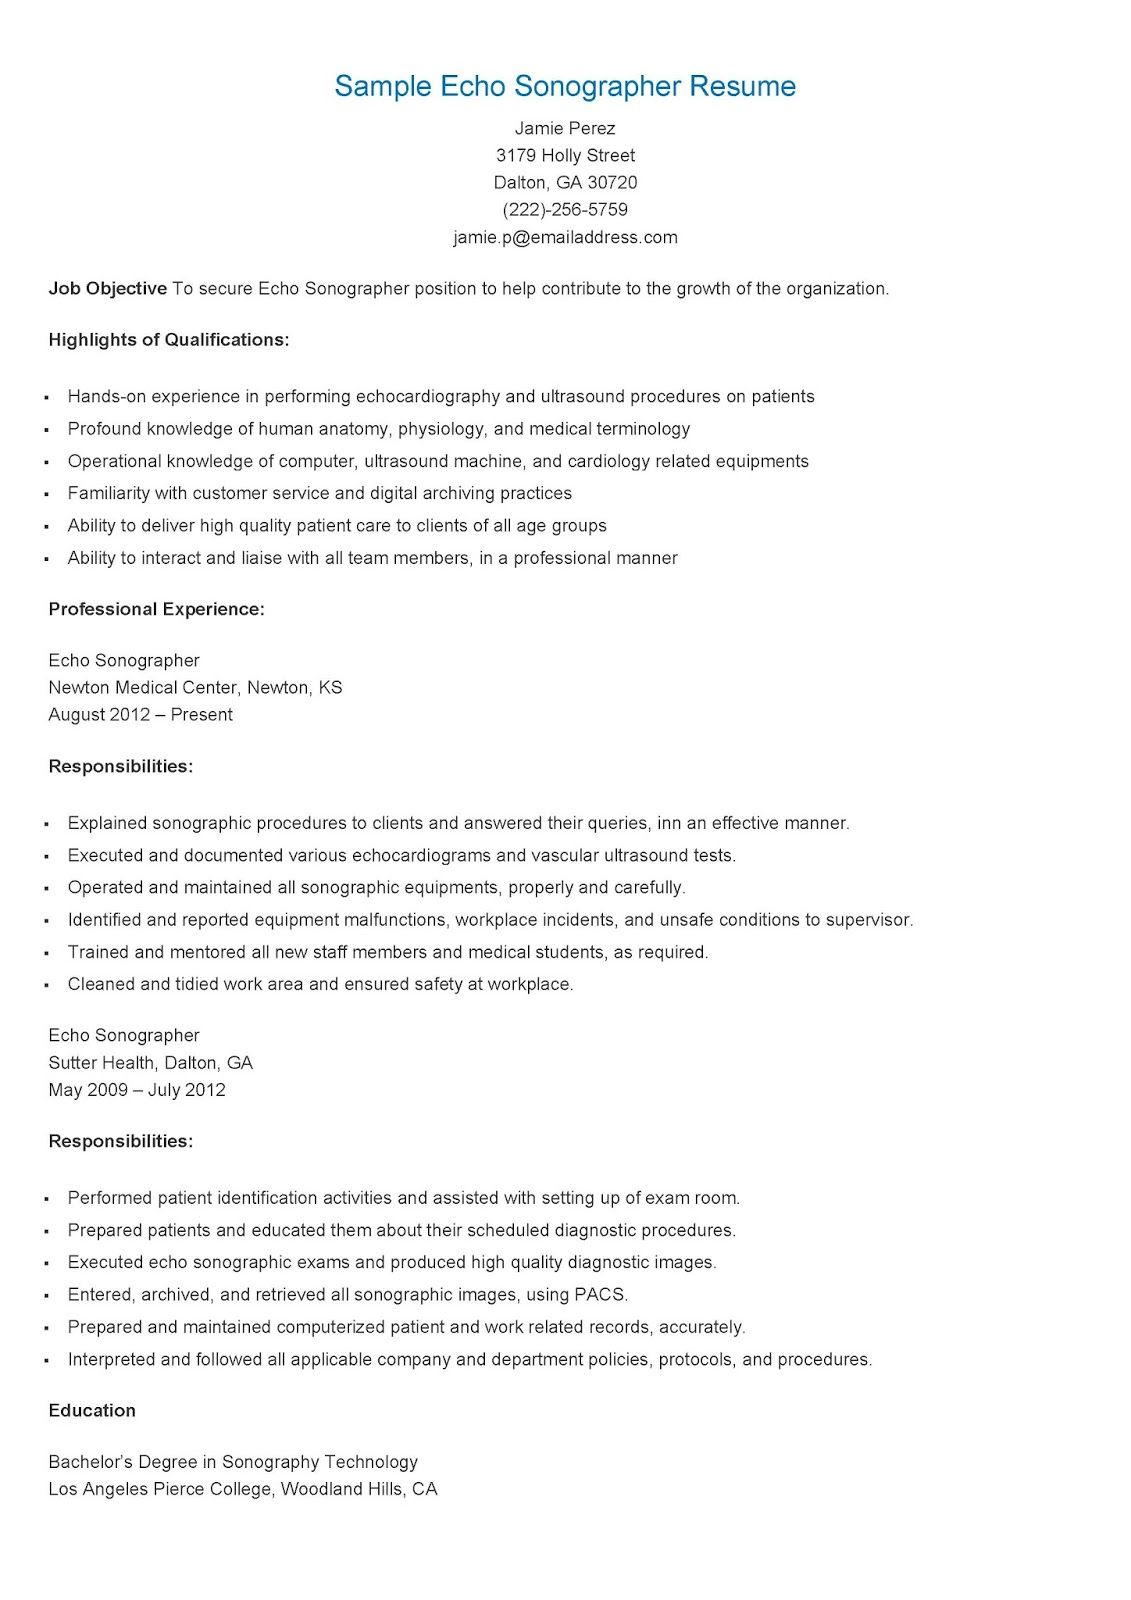 Sample Echo Sonographer Resume Resume Samples Resame Pinterest